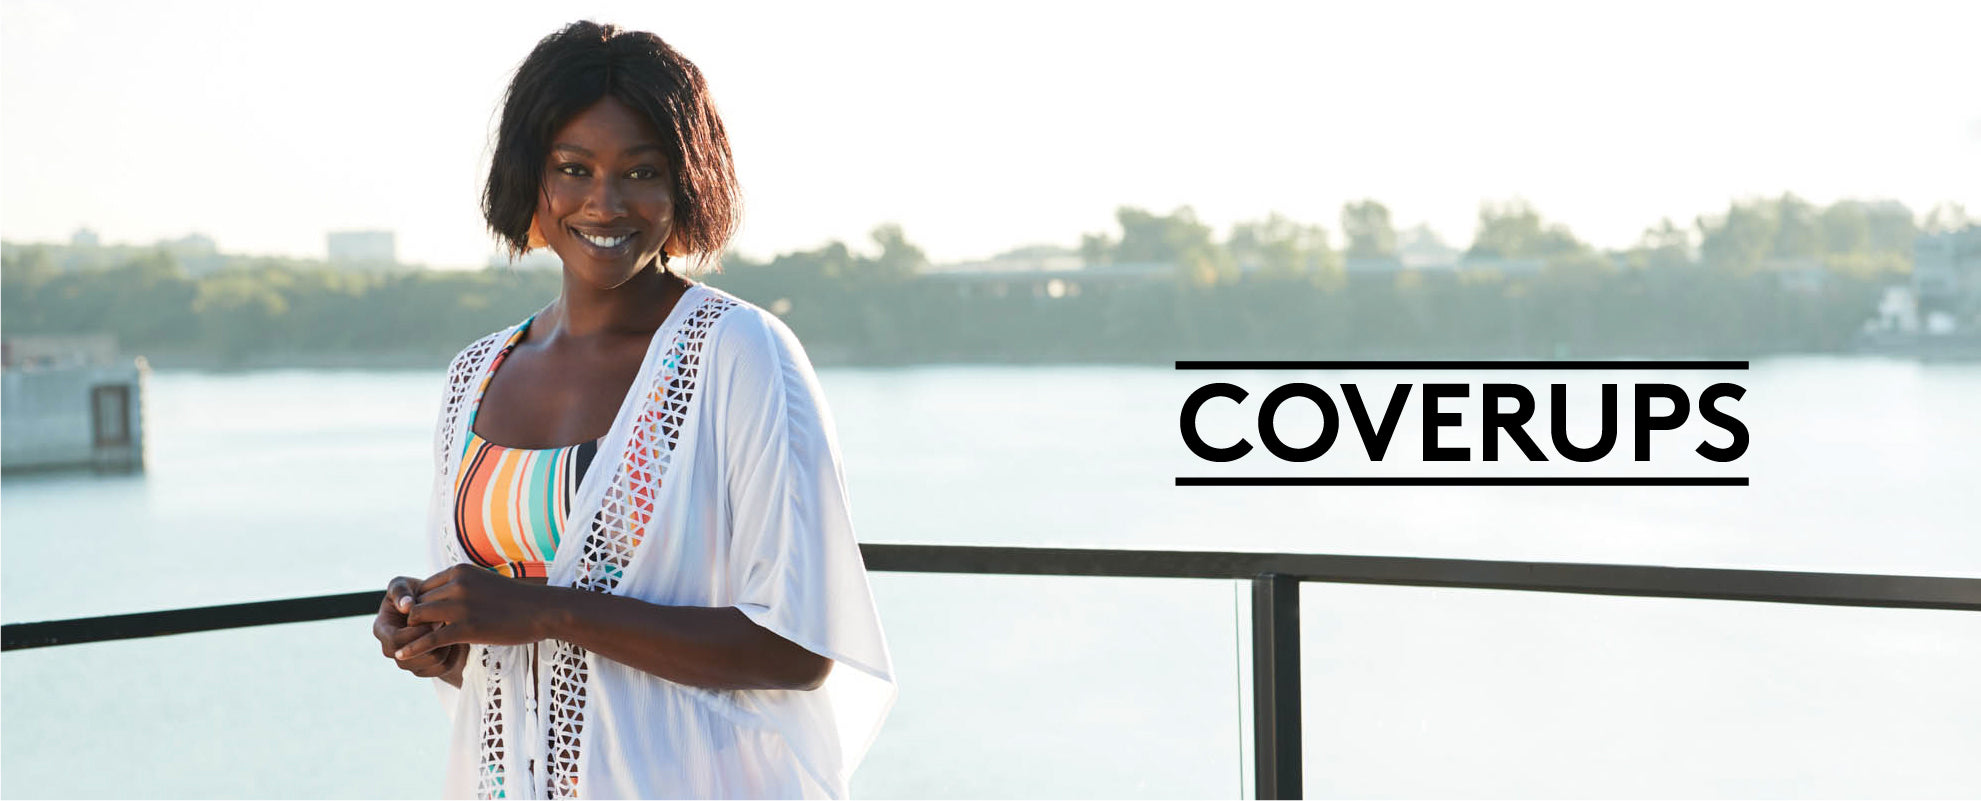 Shop SKYE's Coverups